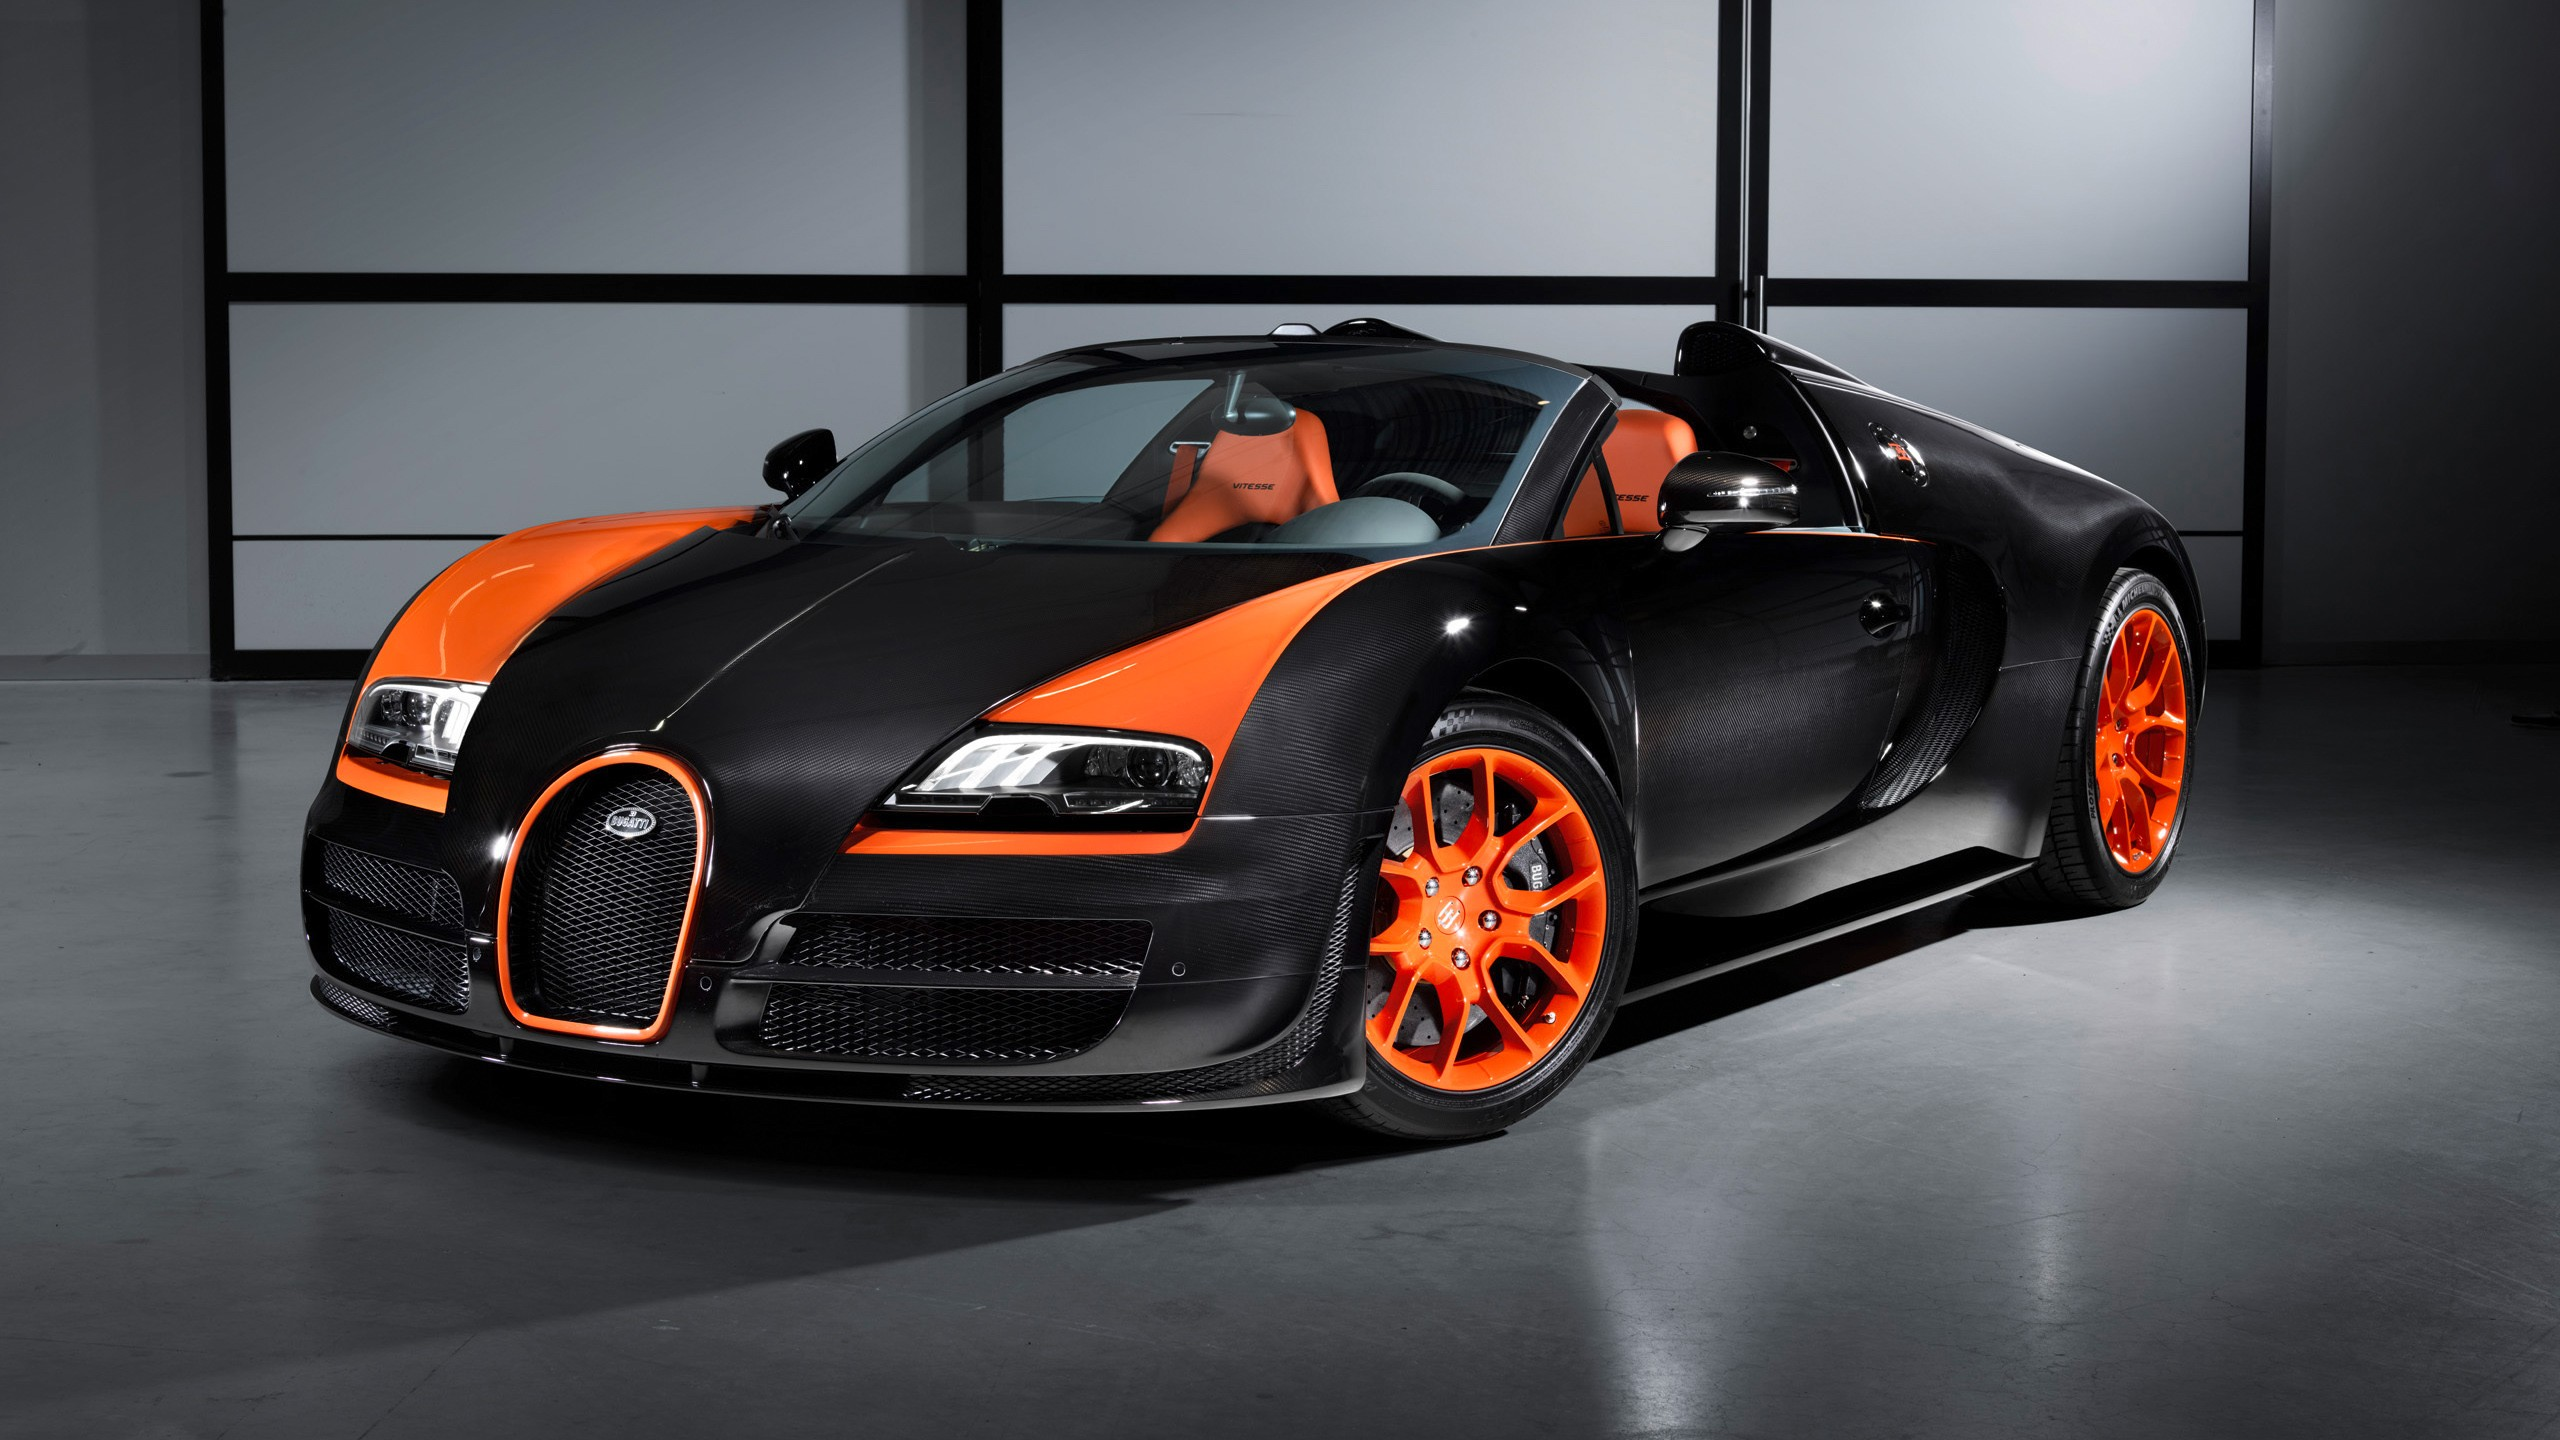 2013 bugatti veyron 16 4 grand sport vitesse world speed record wallpaper hd car wallpapers. Black Bedroom Furniture Sets. Home Design Ideas